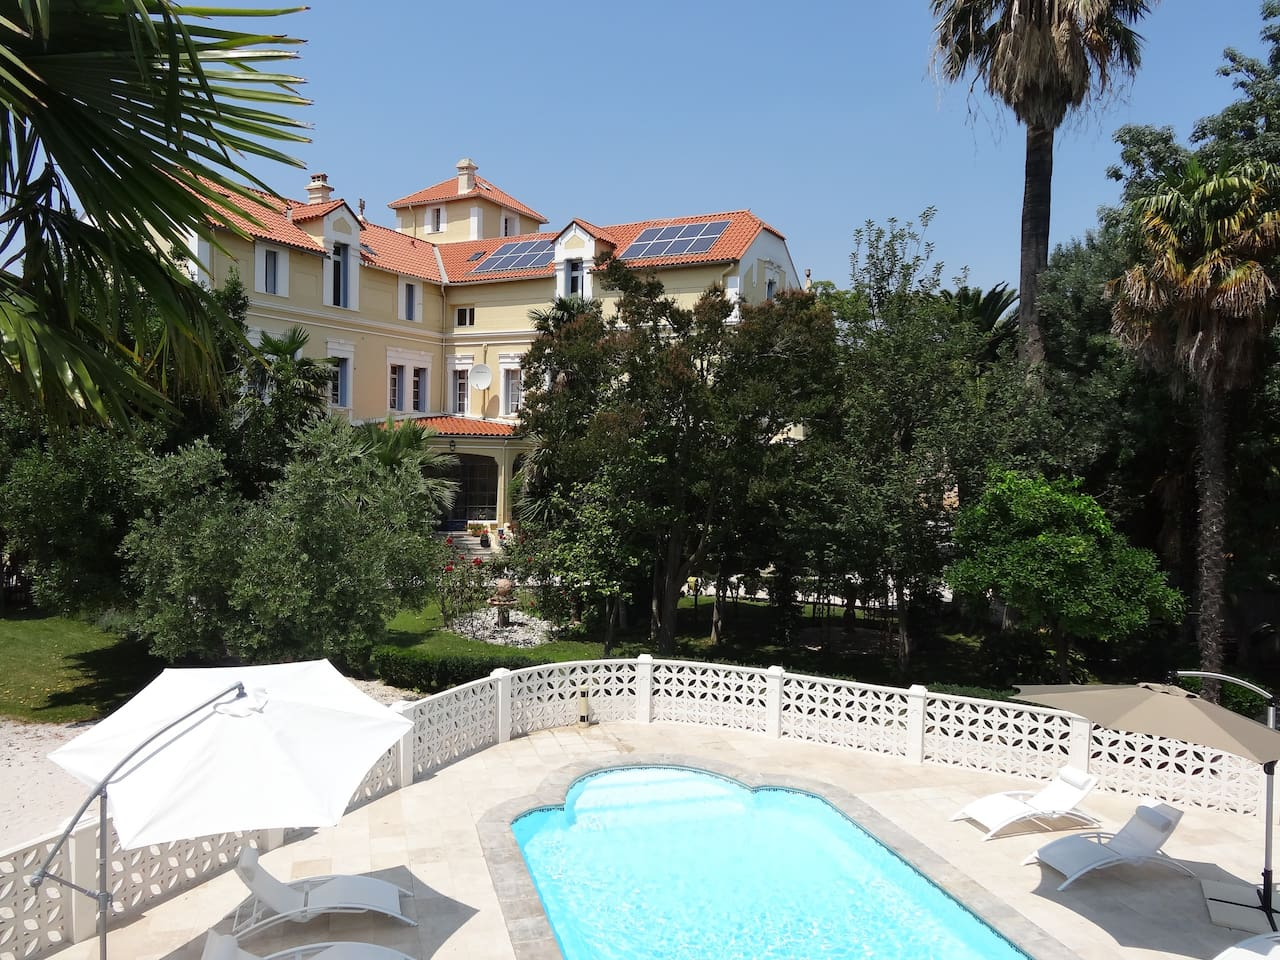 Chateau view from the swimming pool